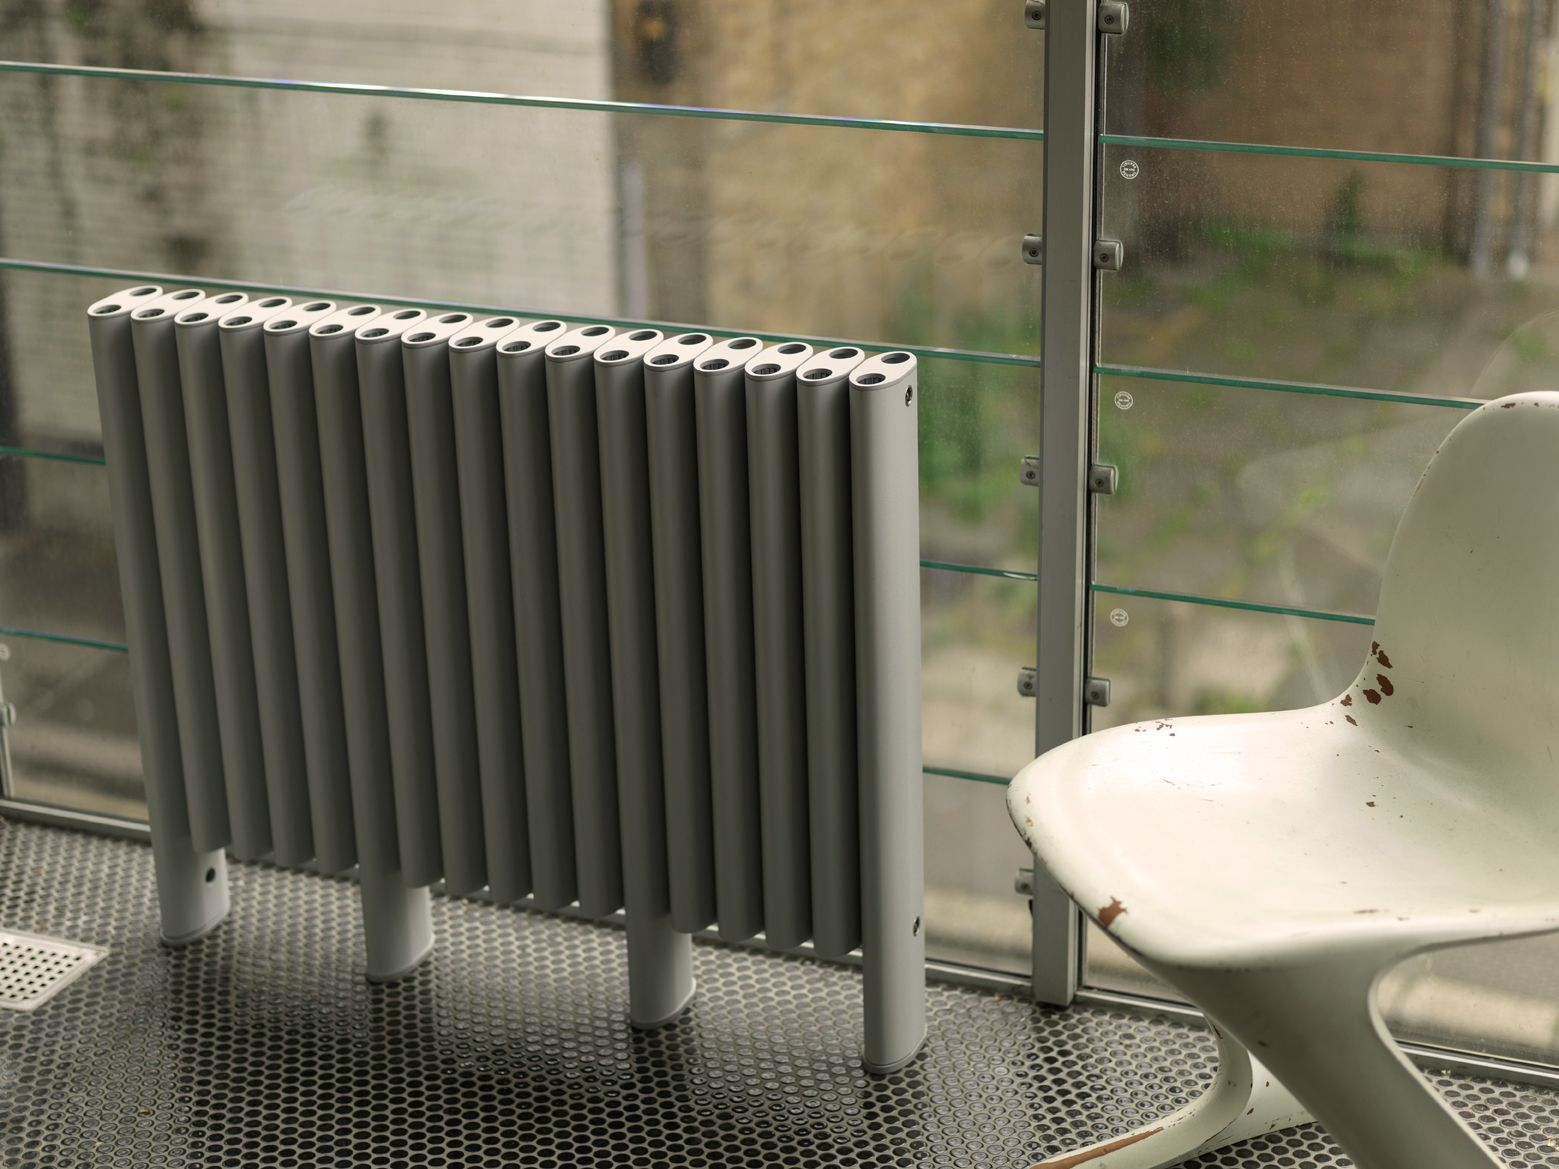 Eskimo radiators